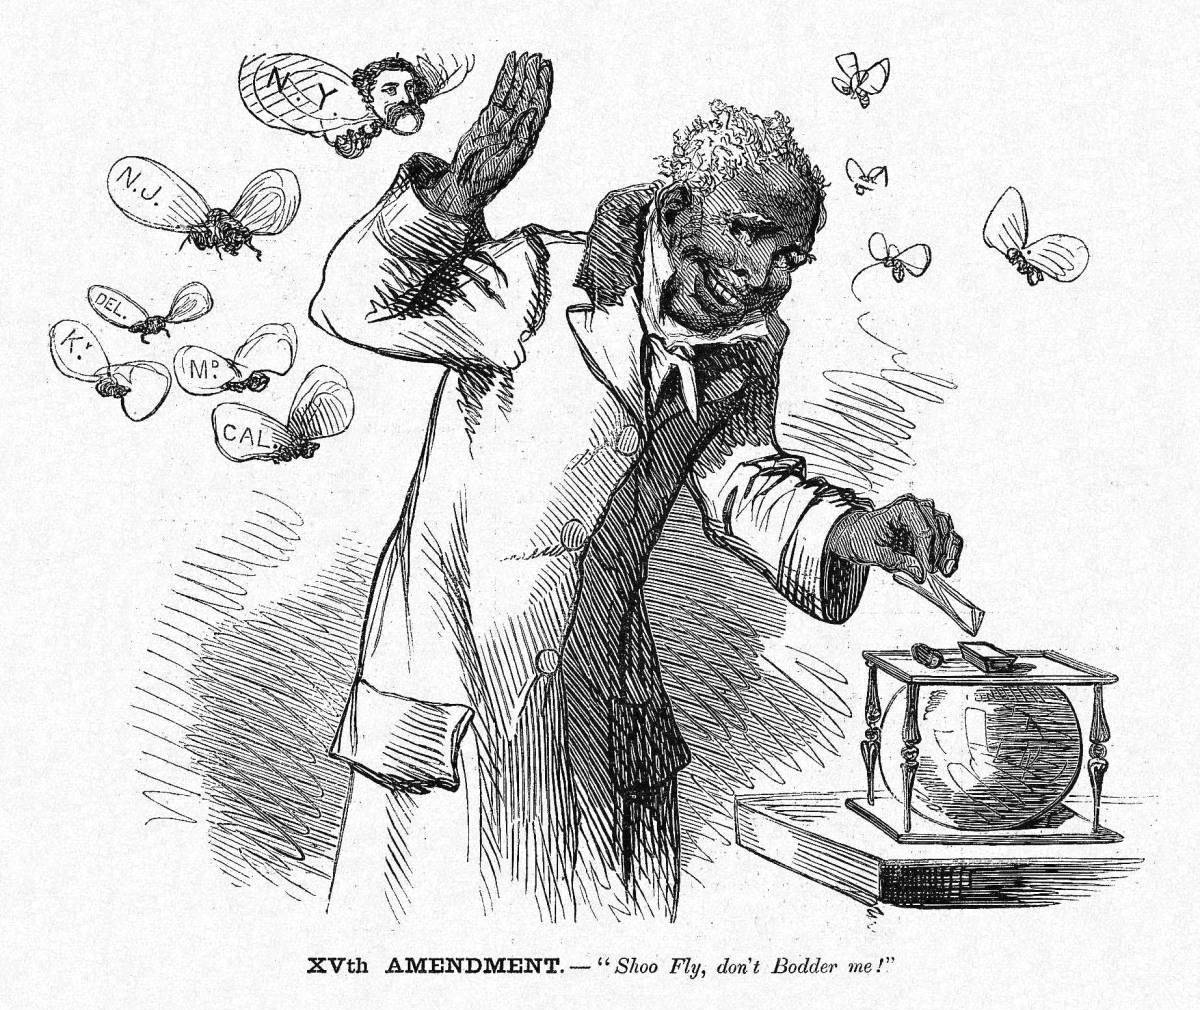 """""""XVth Amendment. — 'Shoo Fly, don't Bodder me!'"""" Comic in  Harper's Weekly , 12 March 1870.  Source:  New York Times . In its historical note on the comic —  here  — the  Times  notes that California """"rejected the amendment for fear it would lead to an 'invasion' of Chinese. There was intense prejudice and discrimination in California against Chinese immigrants, who outnumbered blacks in the state by a ten-to-one ratio."""""""